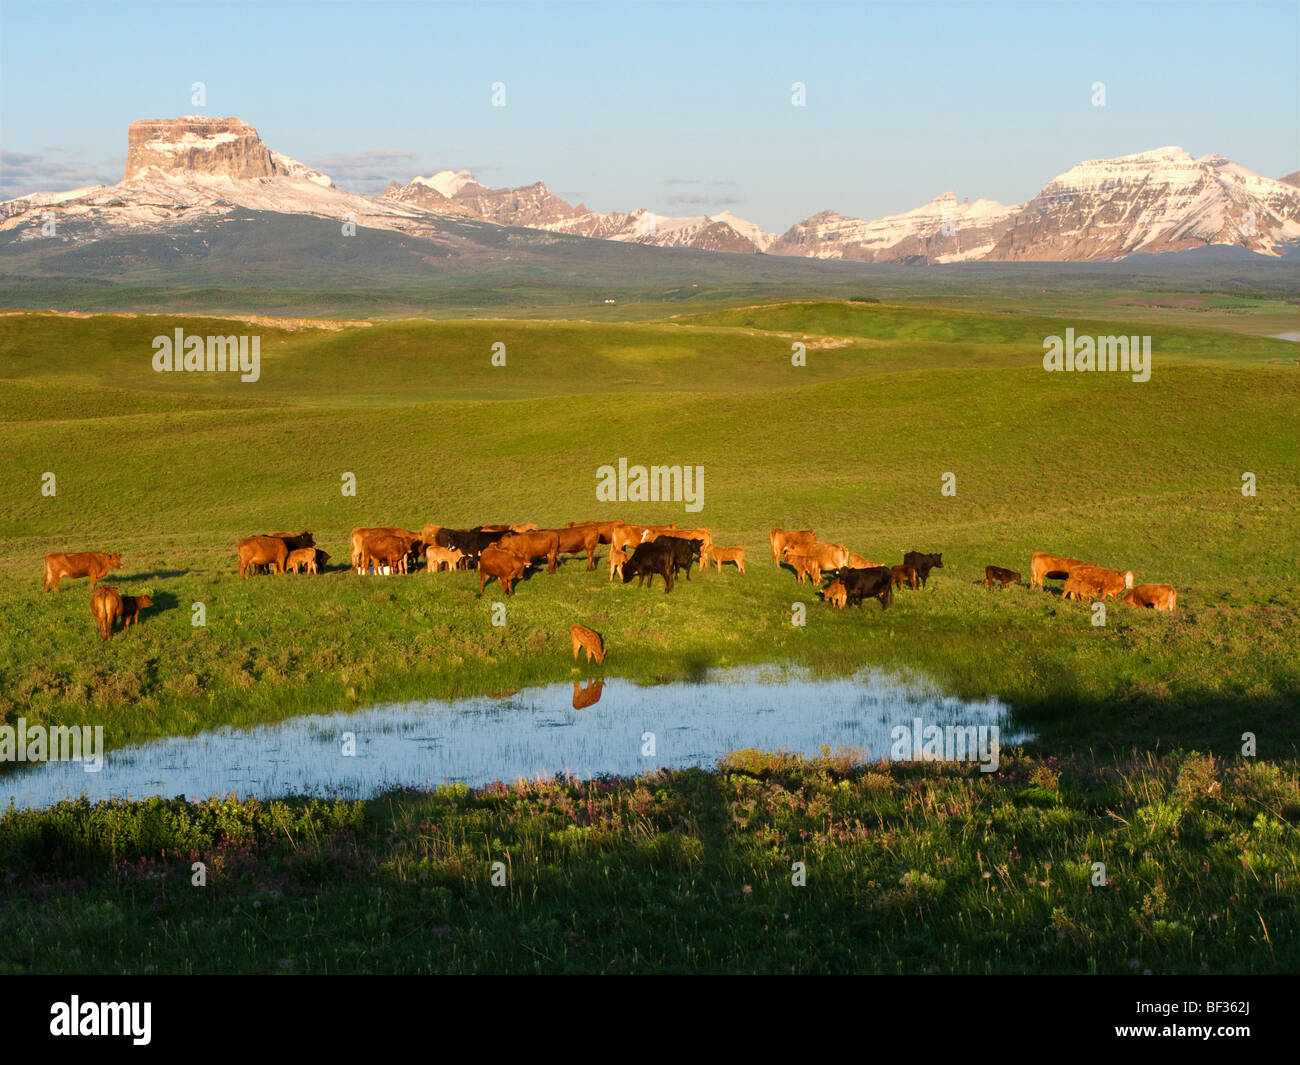 Red and black Angus cows and calves gathered at a prairie water pothole at sunrise on a foothill pasture / Alberta, - Stock Image